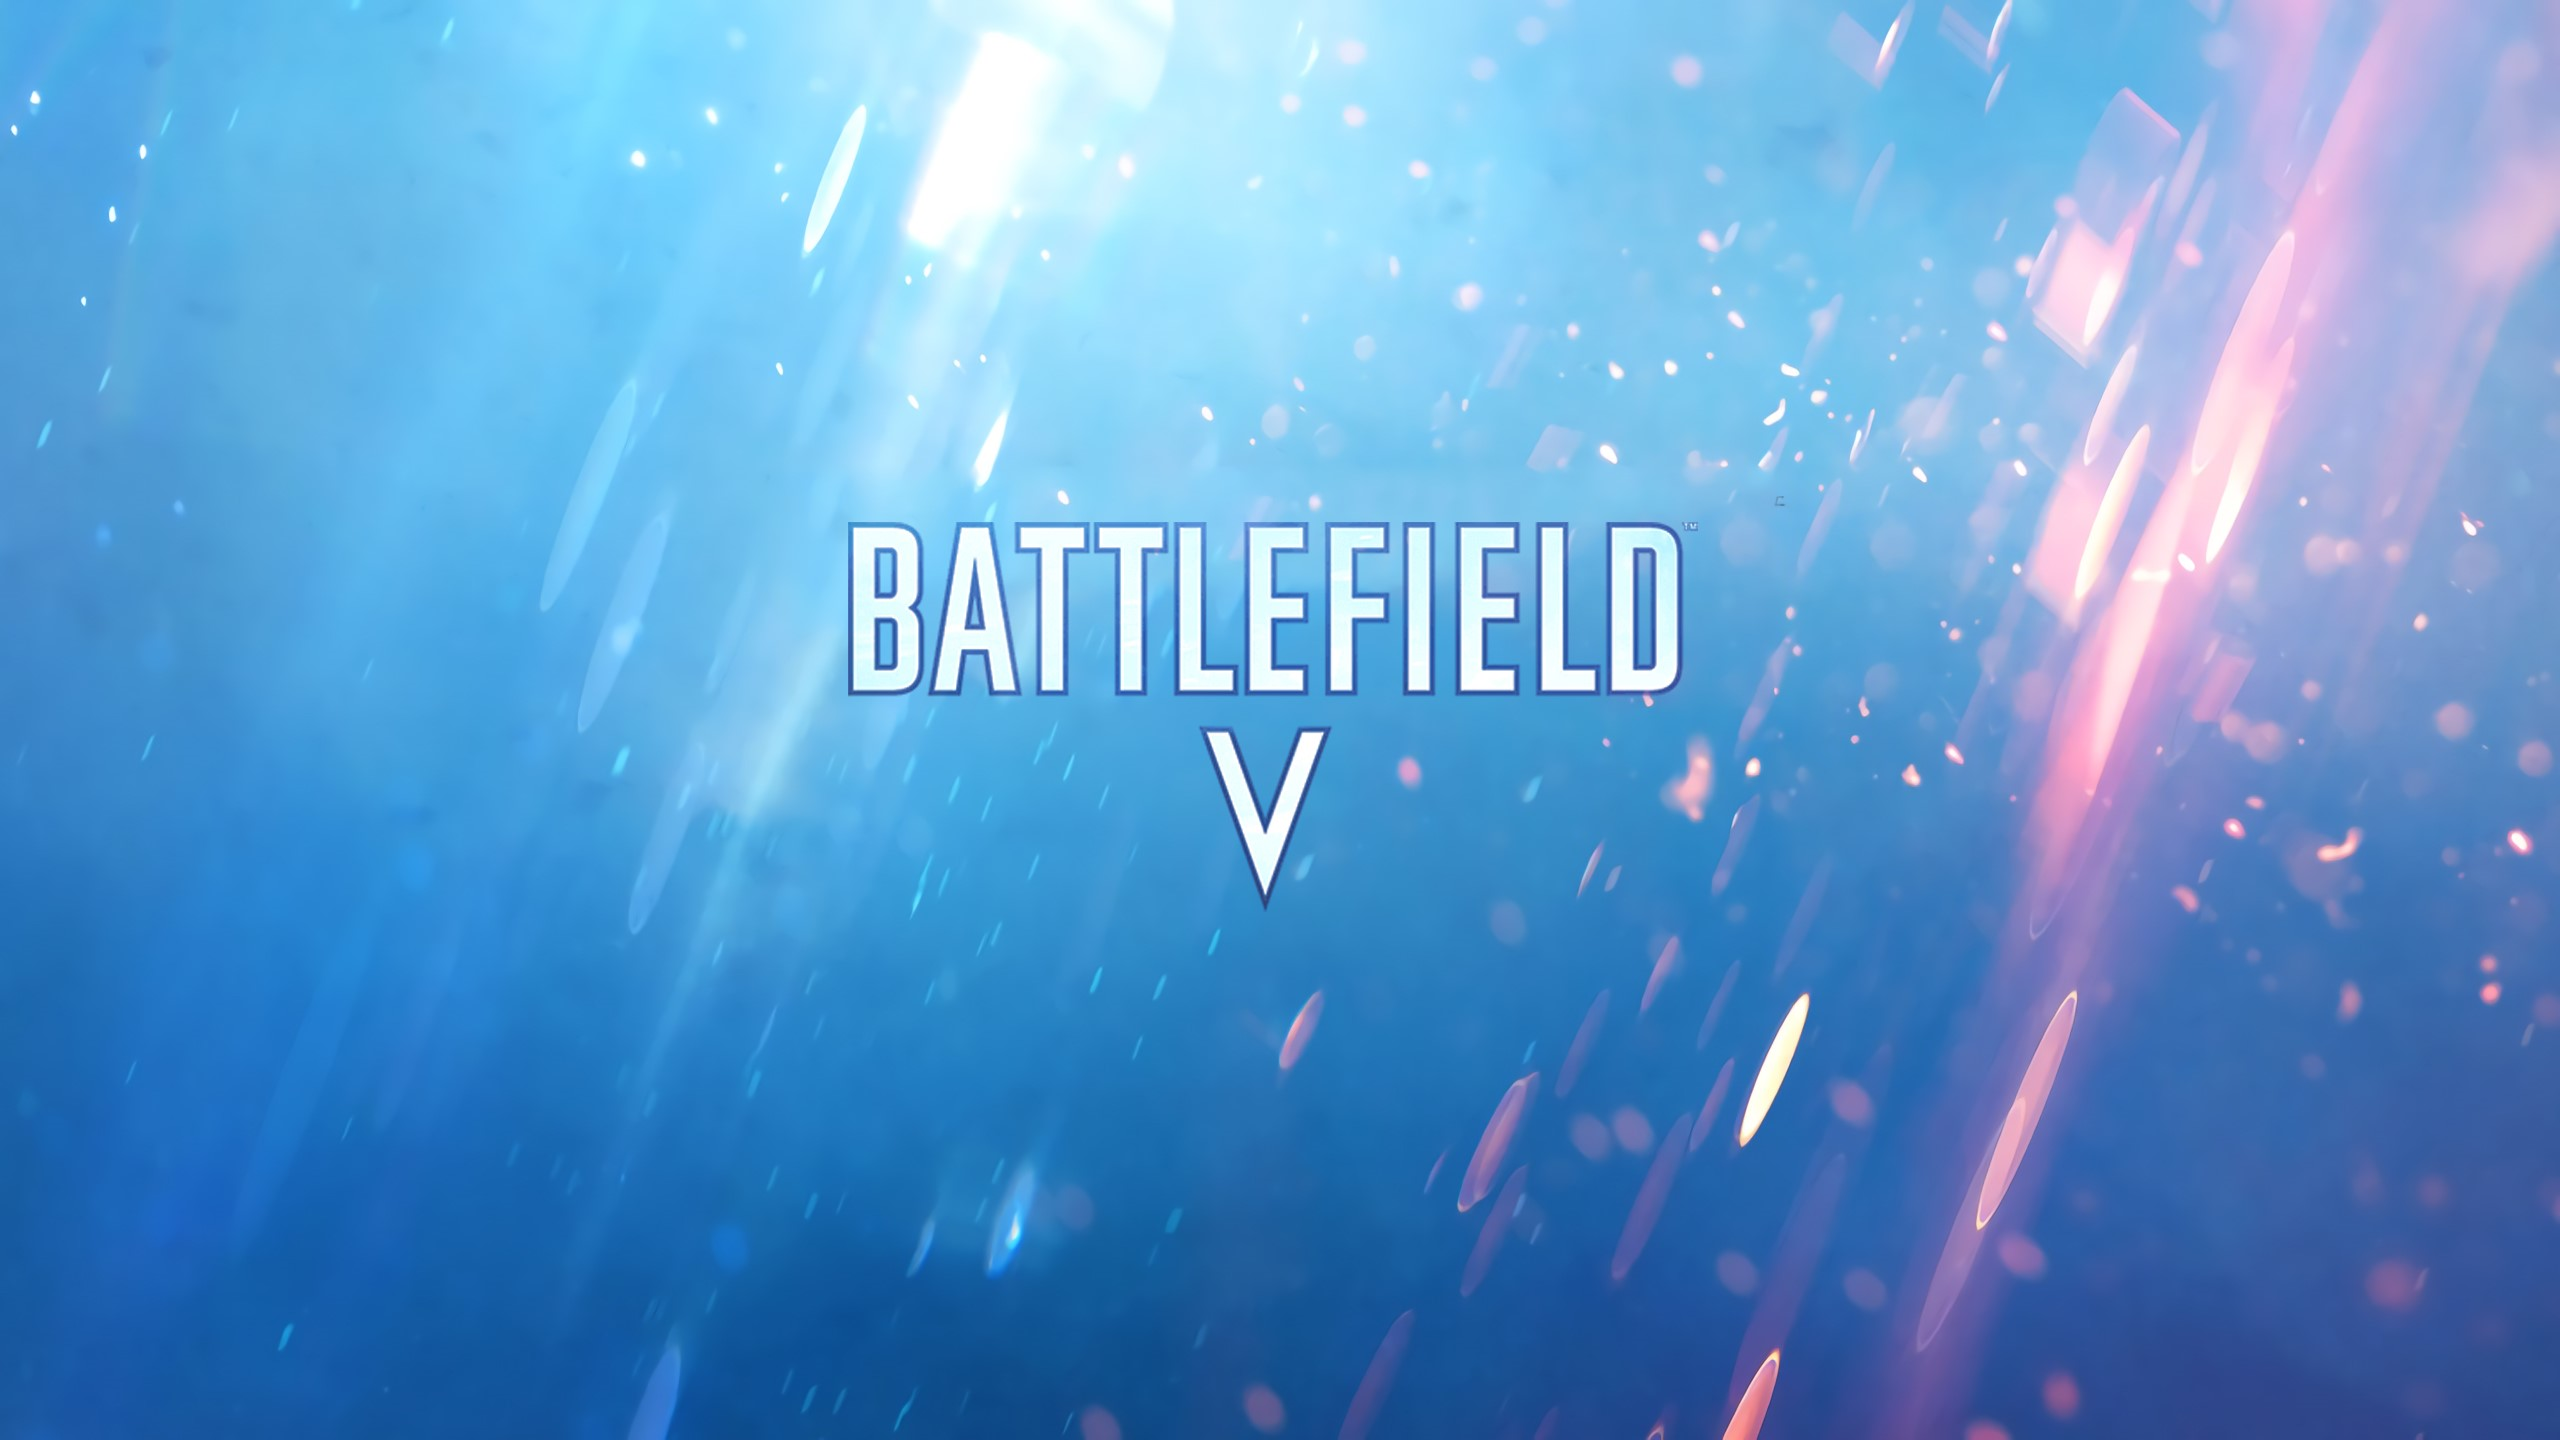 battelfield-5